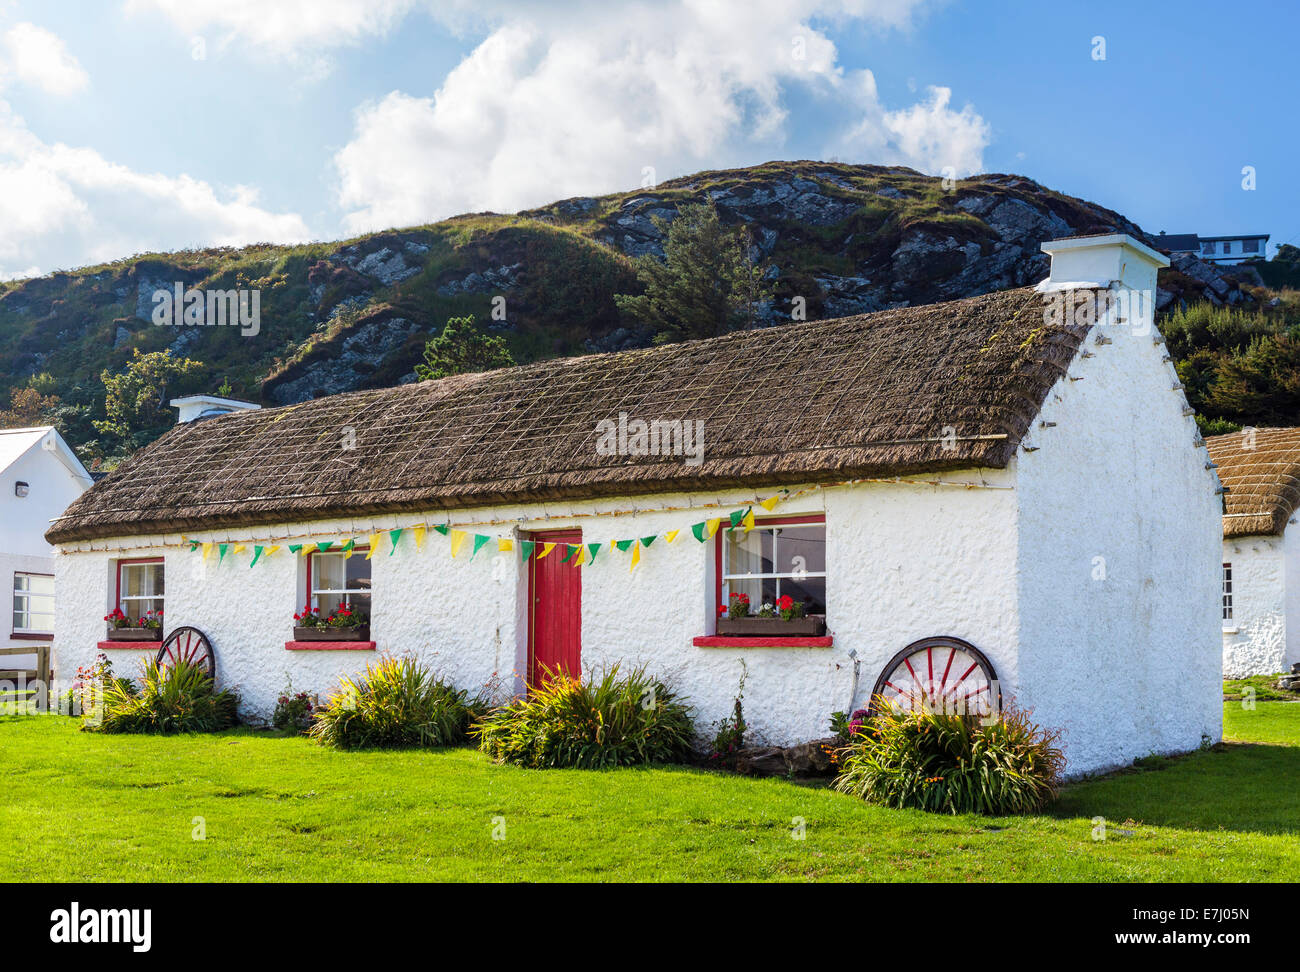 Thatched cottage at the folk village and heritage centre doonalt stock photo royalty free - The thatched cottage ...